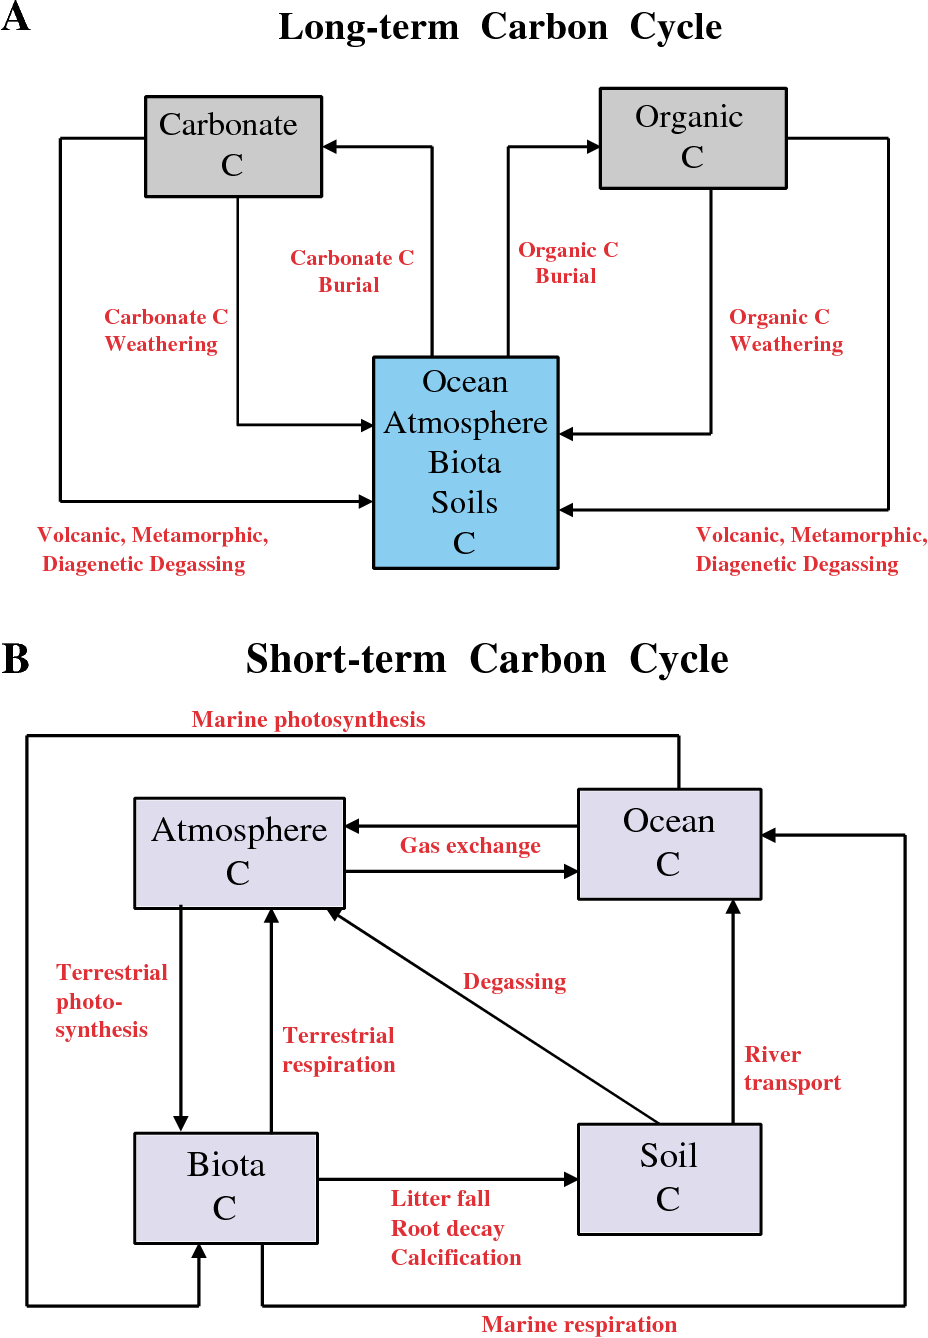 medium resolution of box model diagrams for the carbon cycle boxes represent reservoirs and